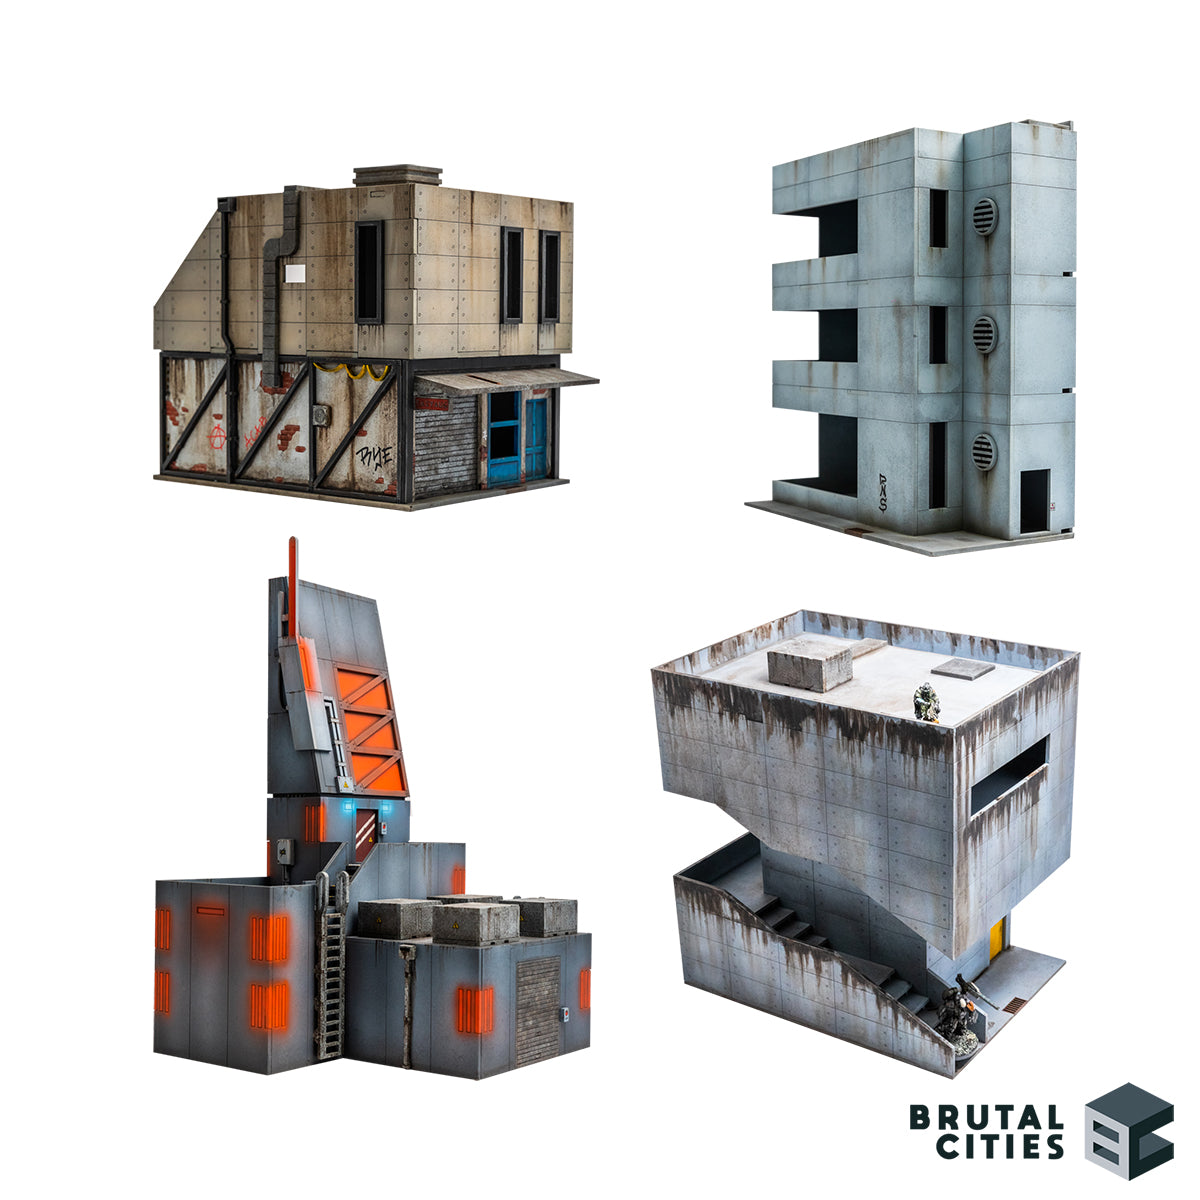 Bundle of 28mm Brutalist MDF wargaming terrain for modern, cyberpunk and sci-fi settings. Pictures show grimey concrete buildings, a hong kong inspired shop, a minimalist office building, a tall data centre tower to block LOS and a massive concrete building with a large stairway.